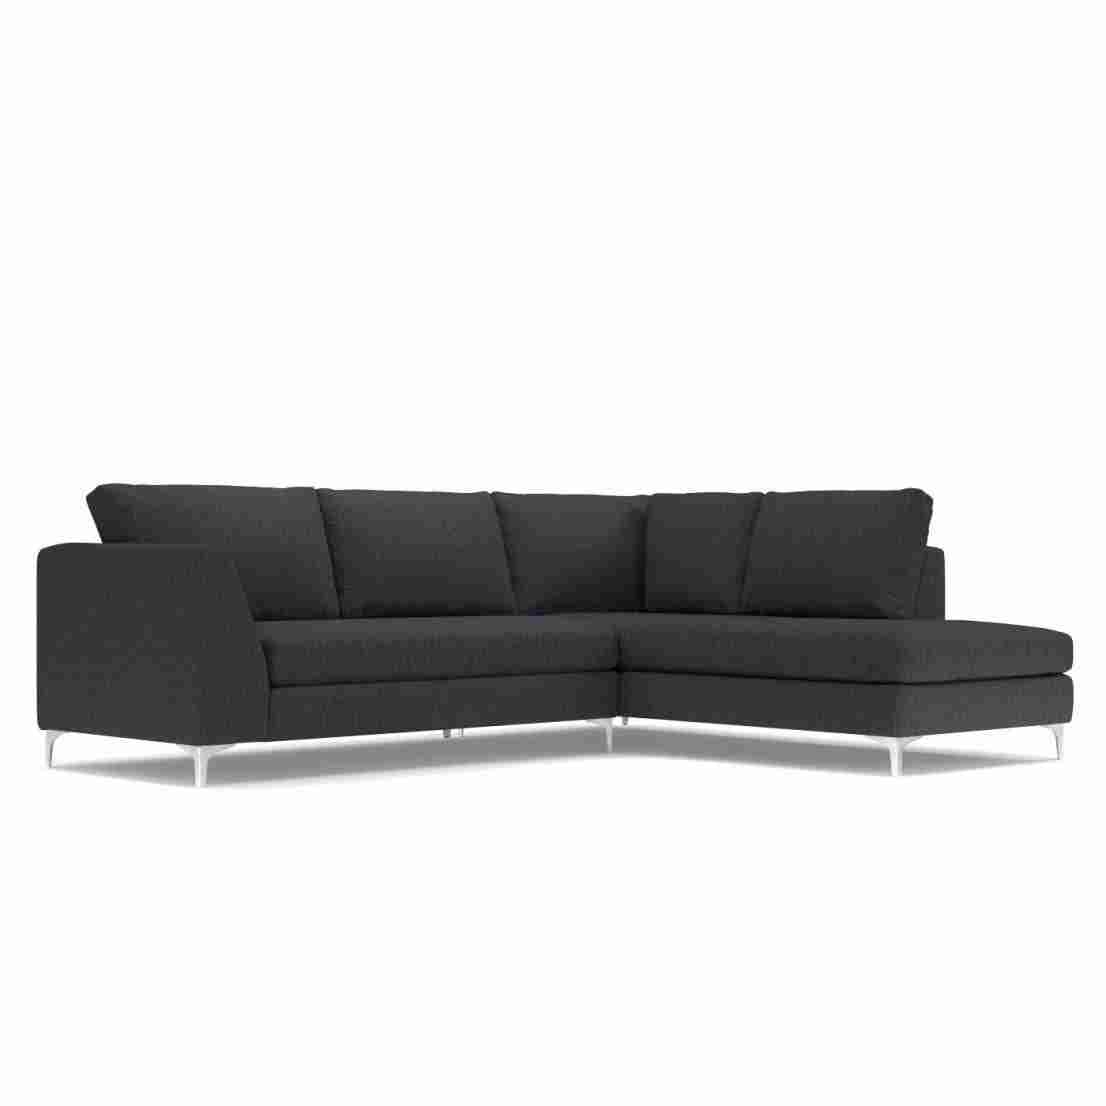 Affordable Custom Sectional Sofa | Cincinnatitaxi Intended For Egan Ii Cement Sofa Sectionals With Reversible Chaise (View 22 of 25)